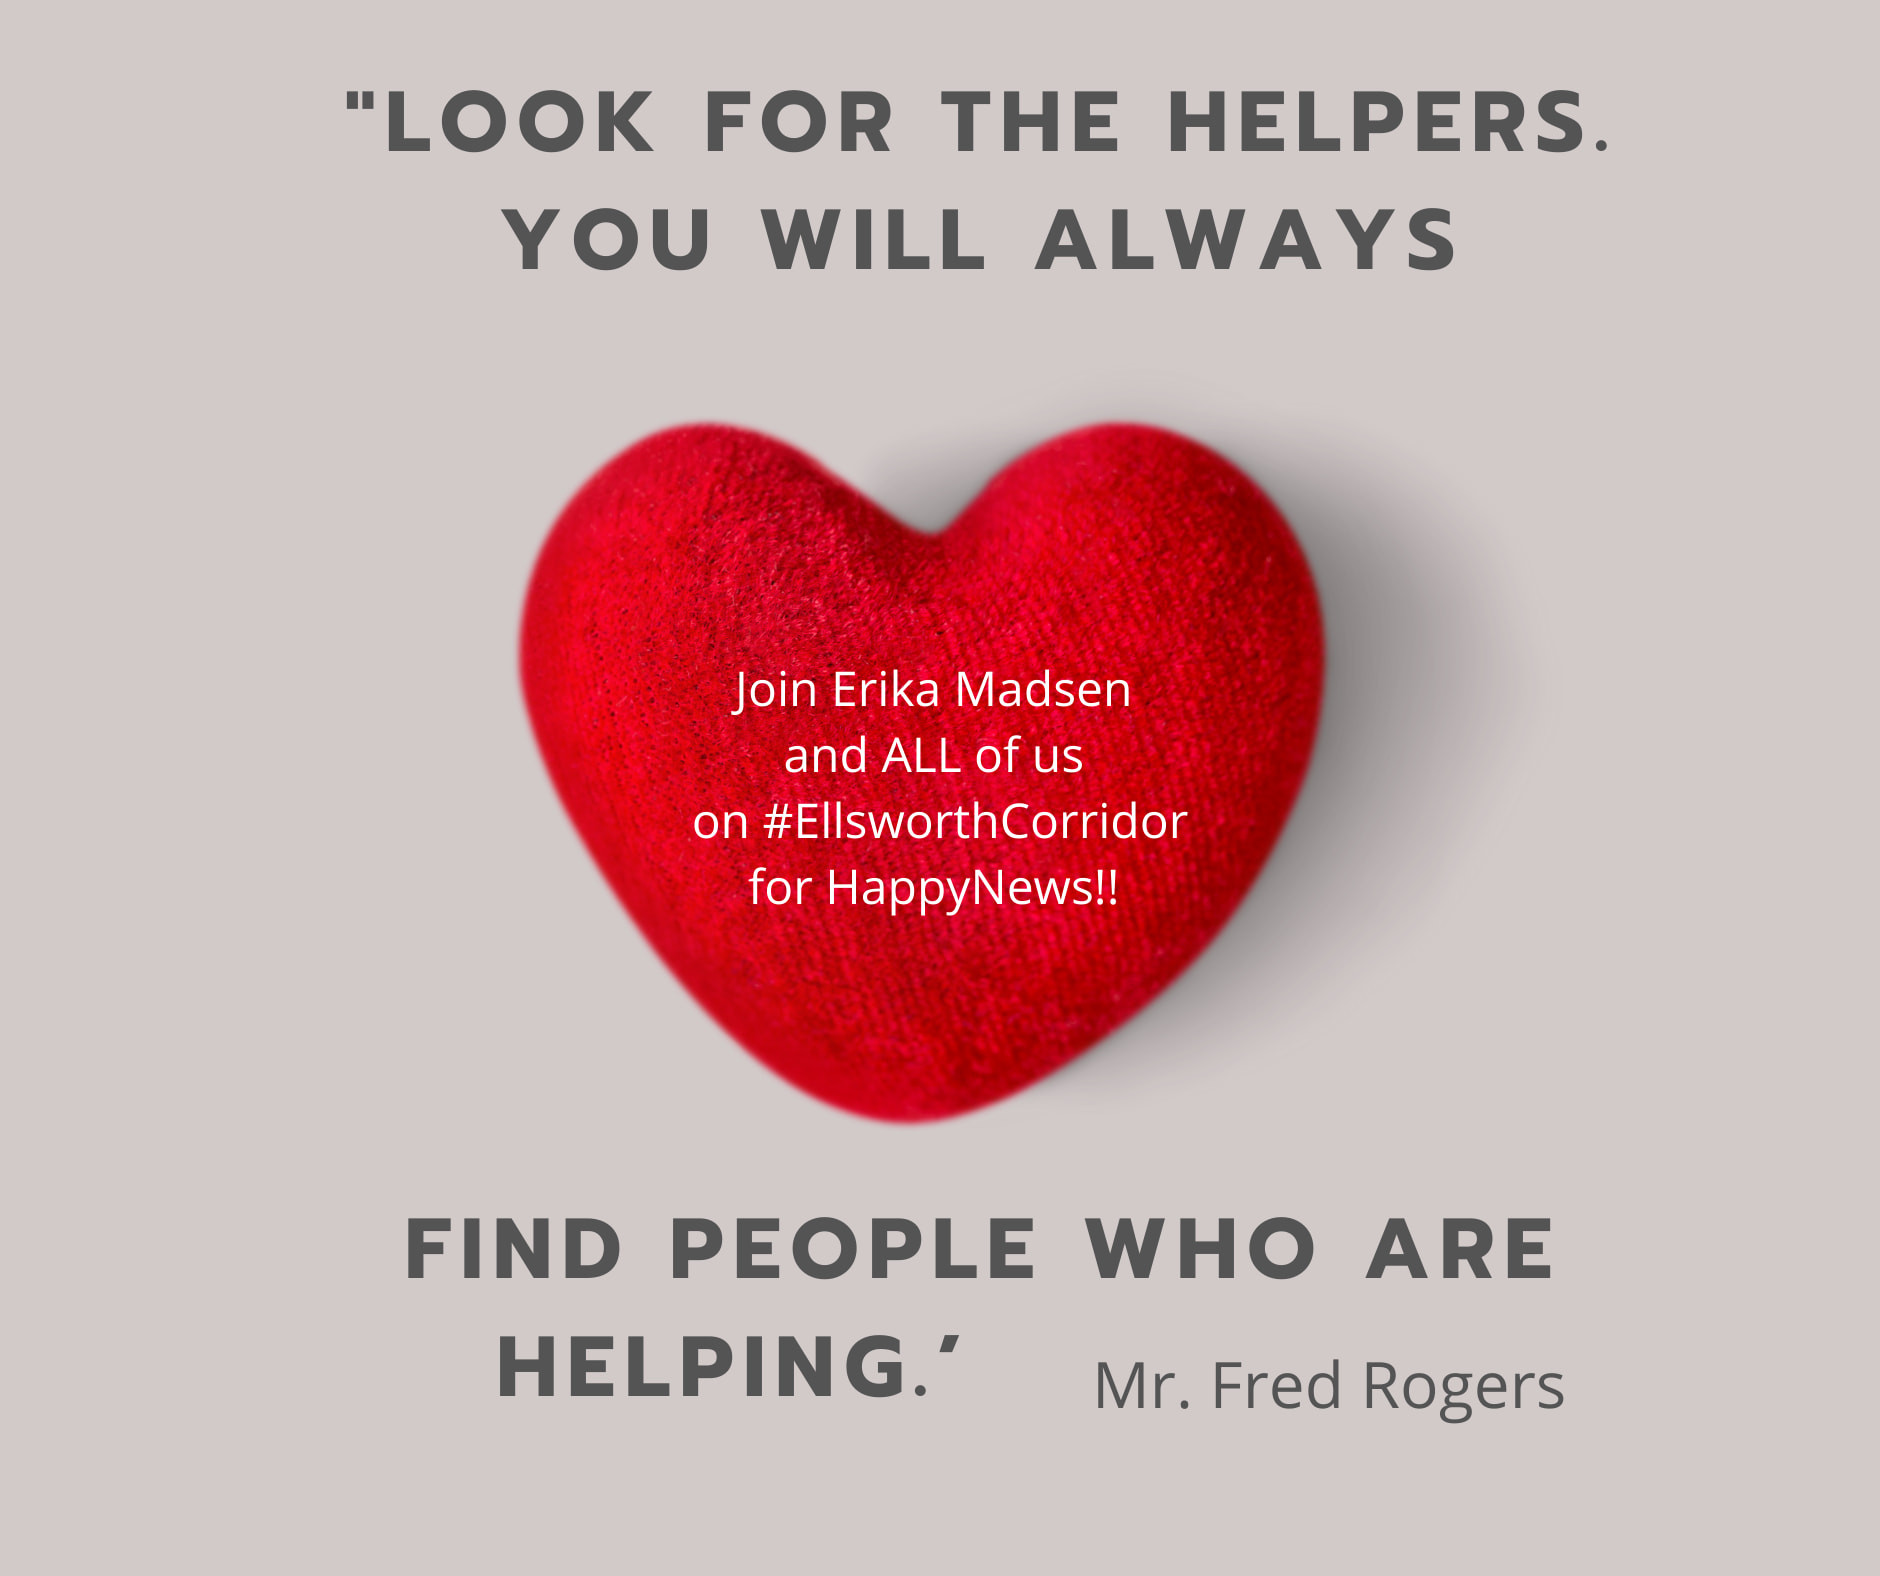 Look for the Helpers!